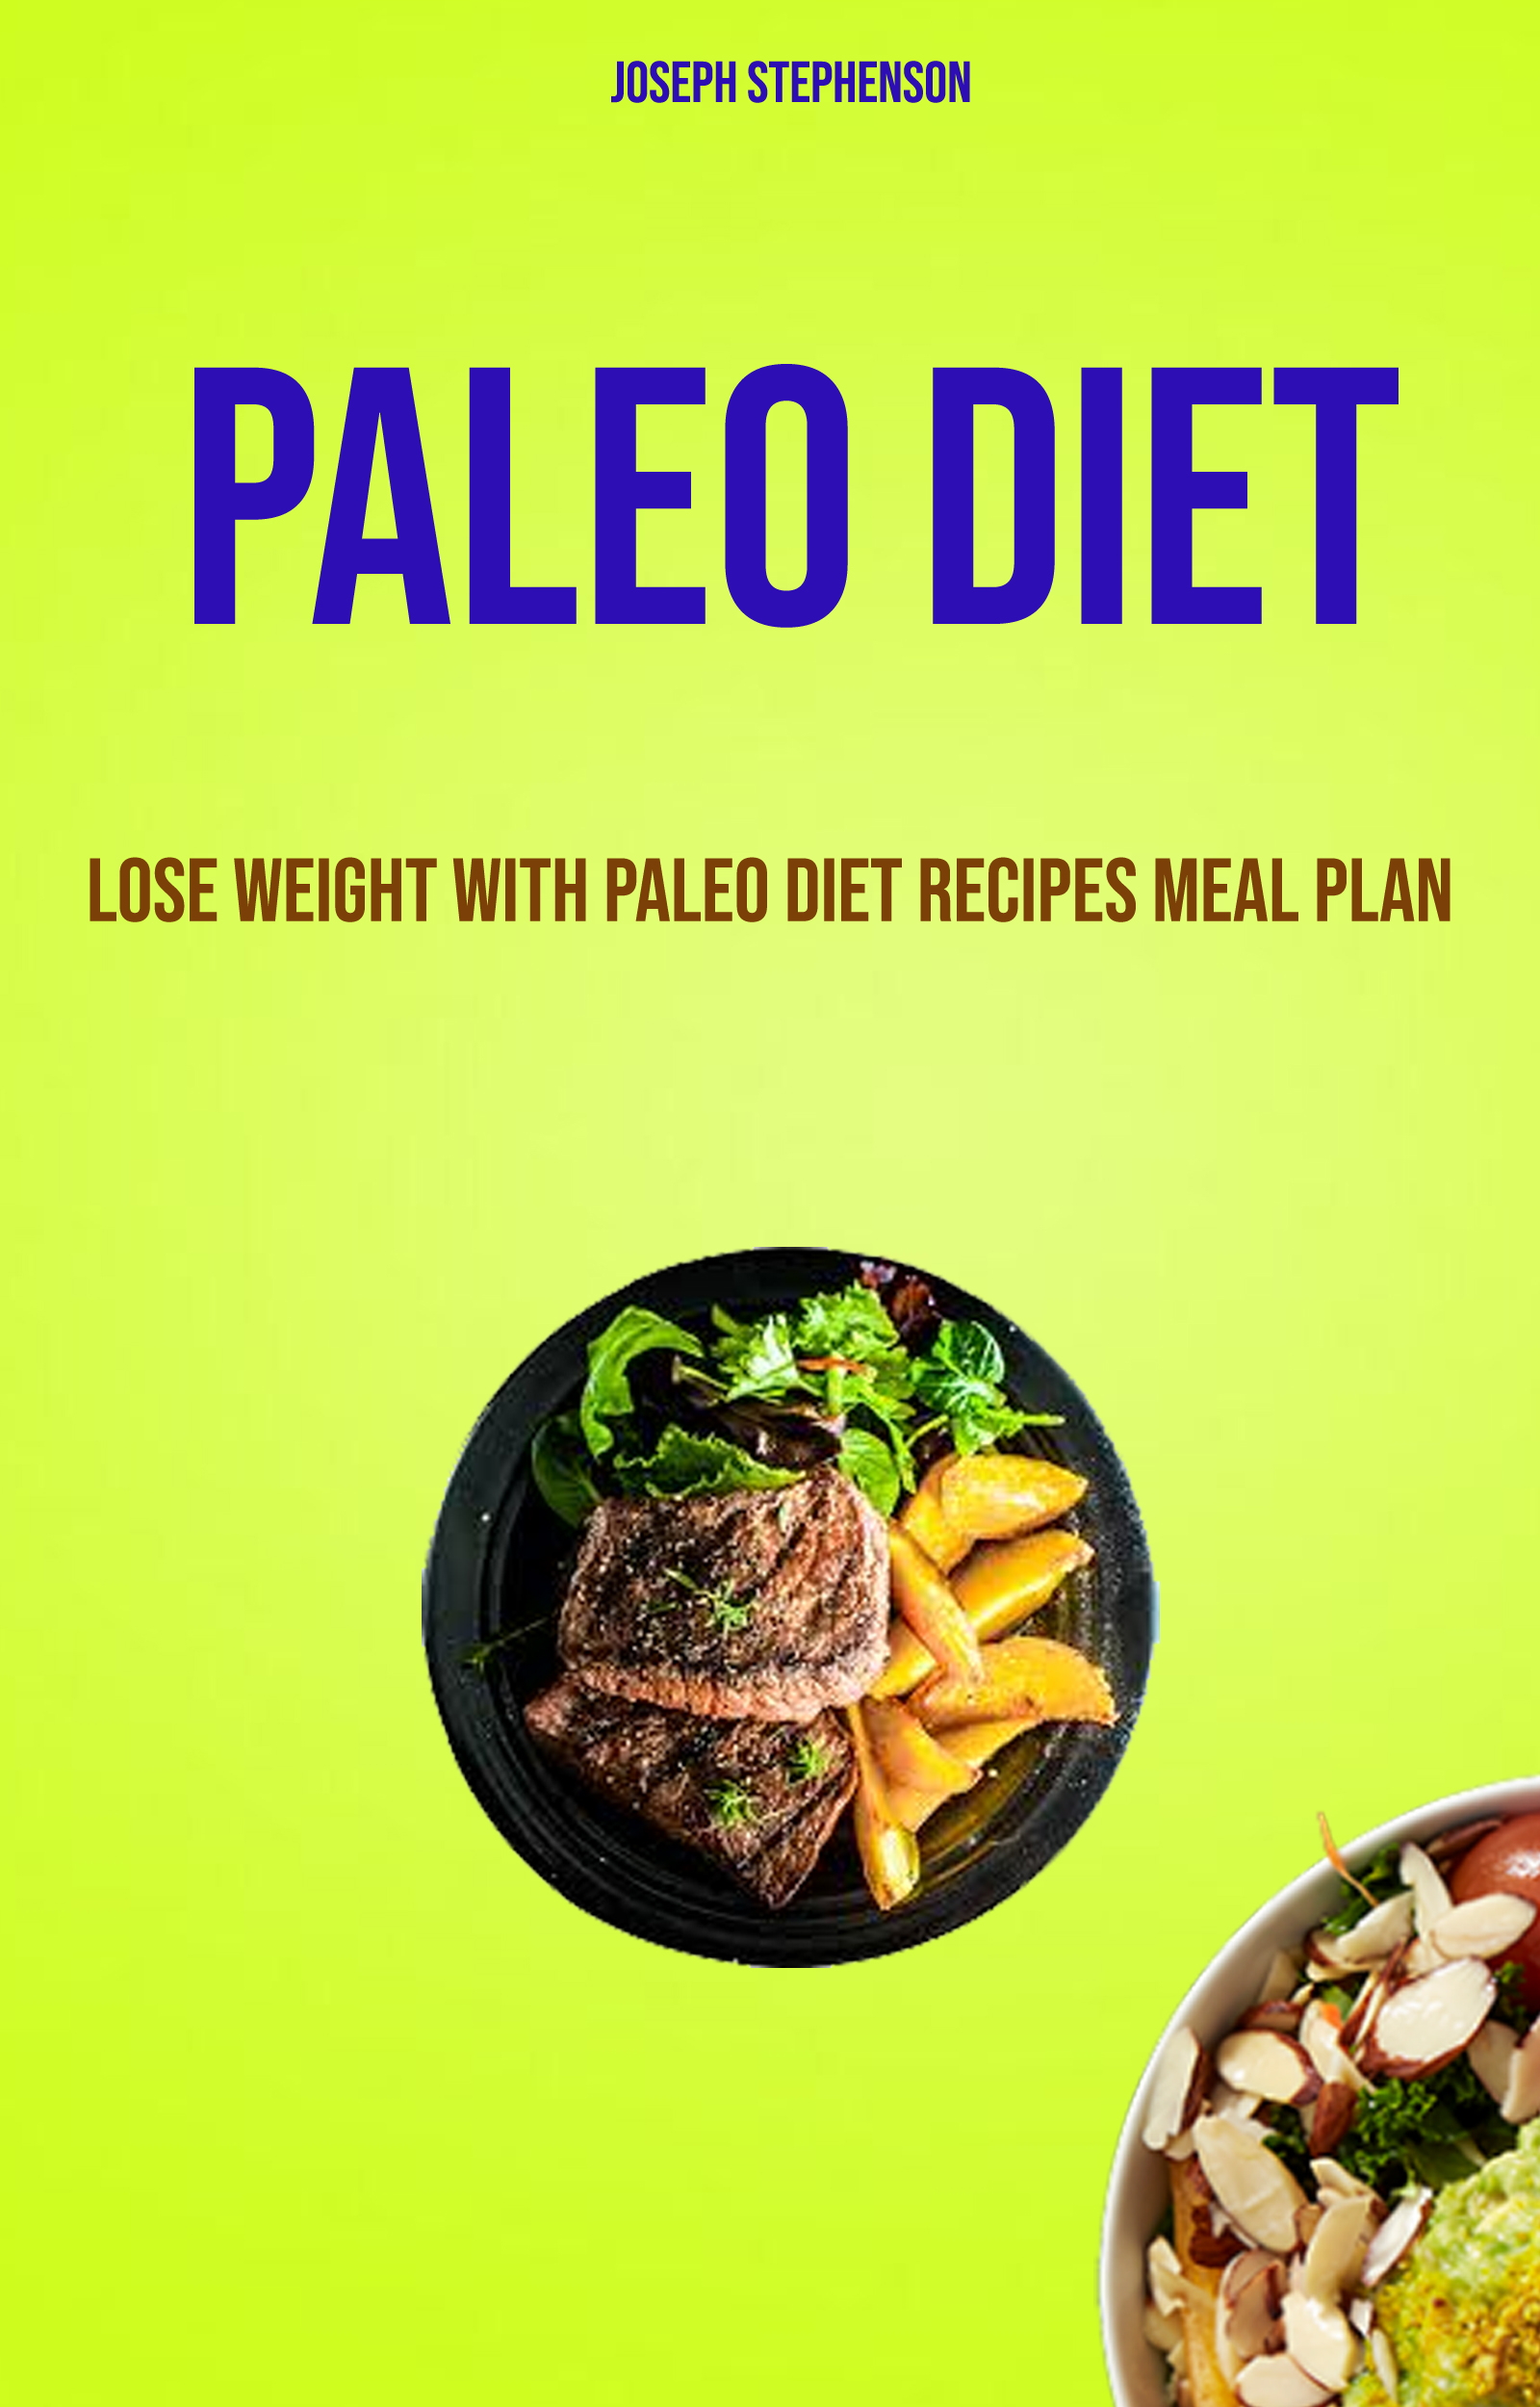 Paleo diet :lose weight with paleo diet recipes meal plan